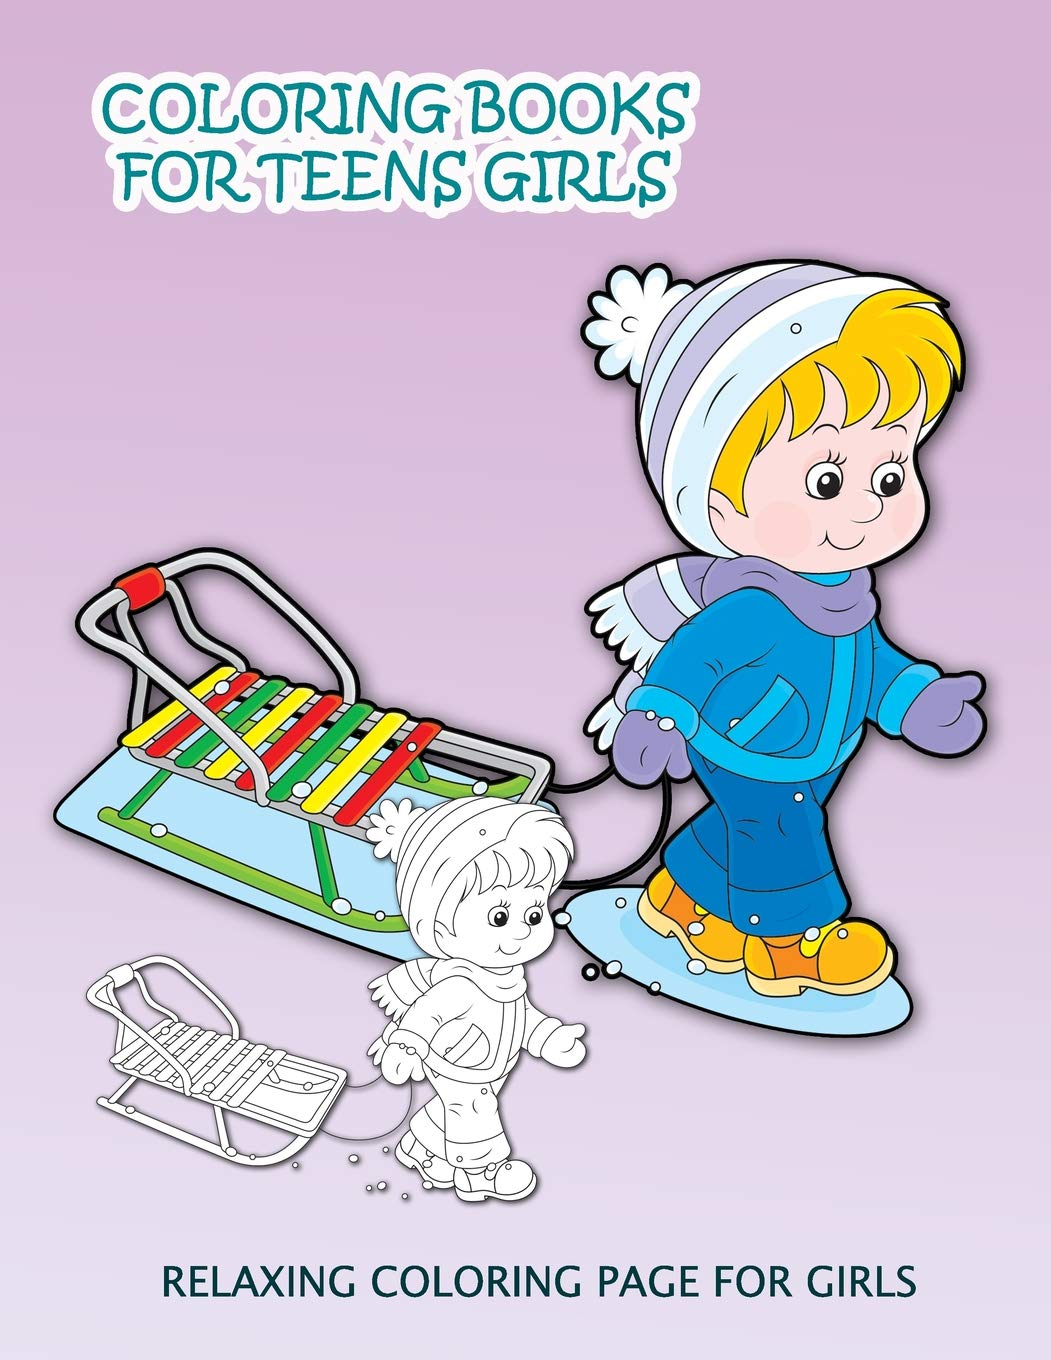 Amazon.com: Coloring Books For Teens Girls: Relaxing ...